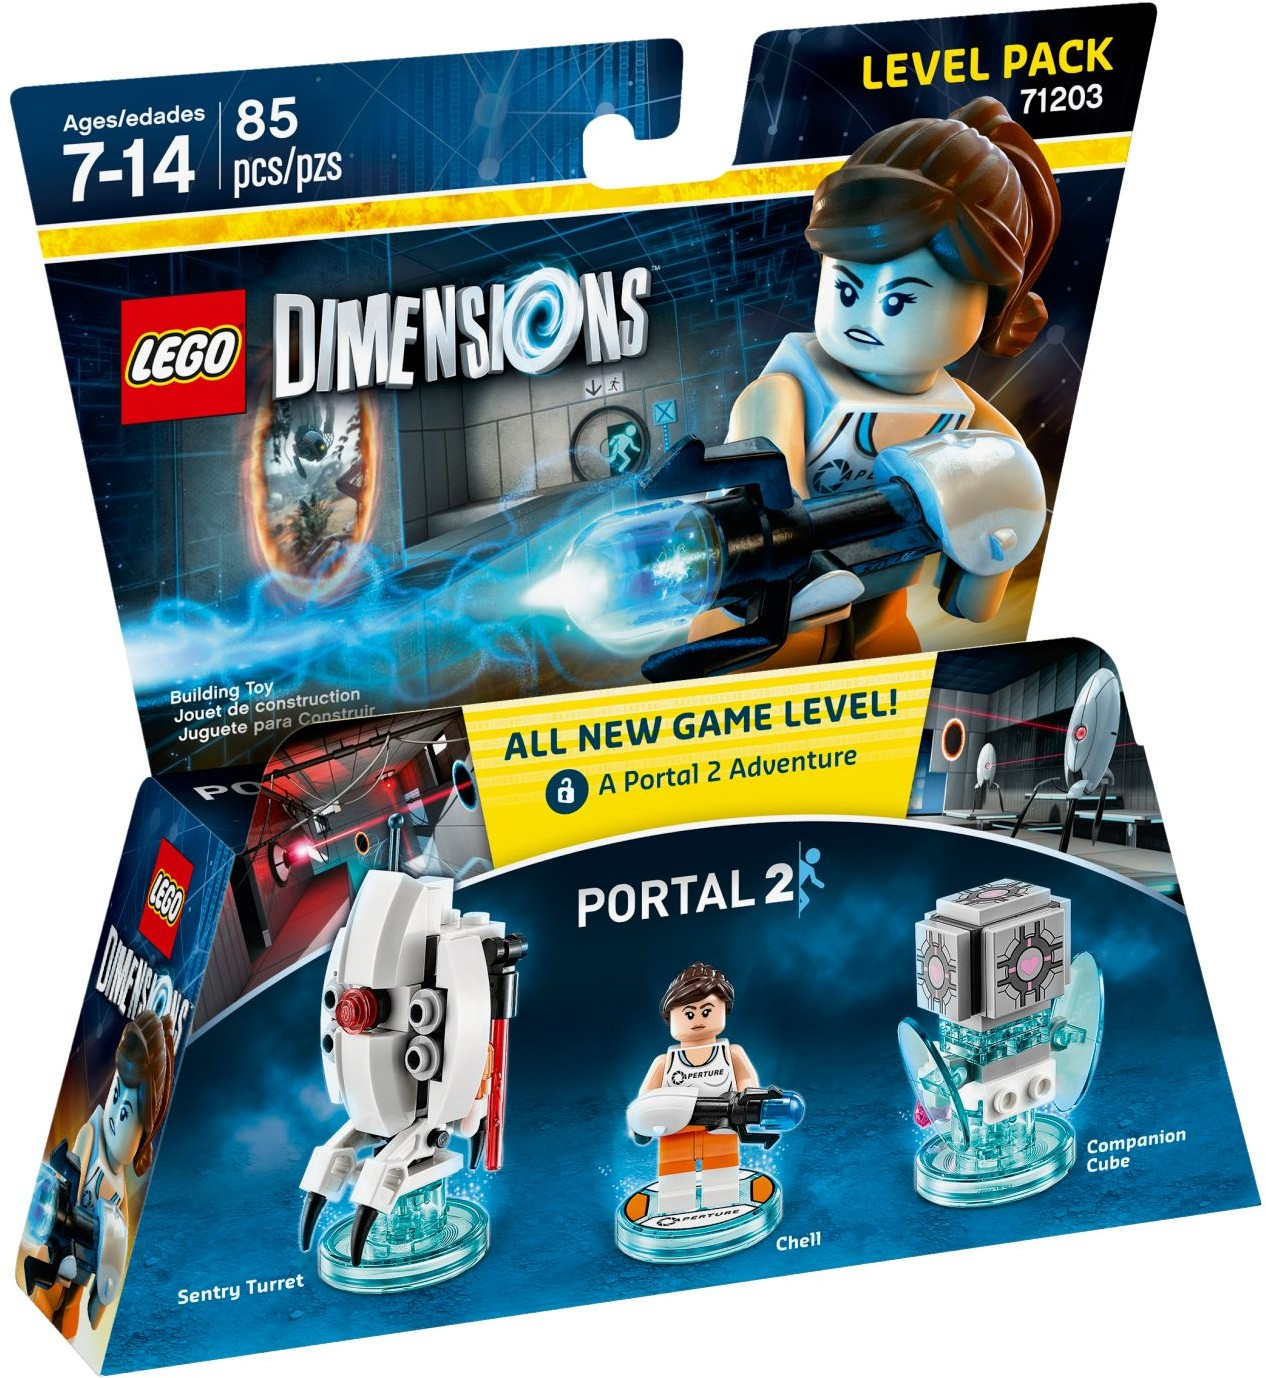 LEGO 71203 - Dimensions - Level Pack: Portal 2